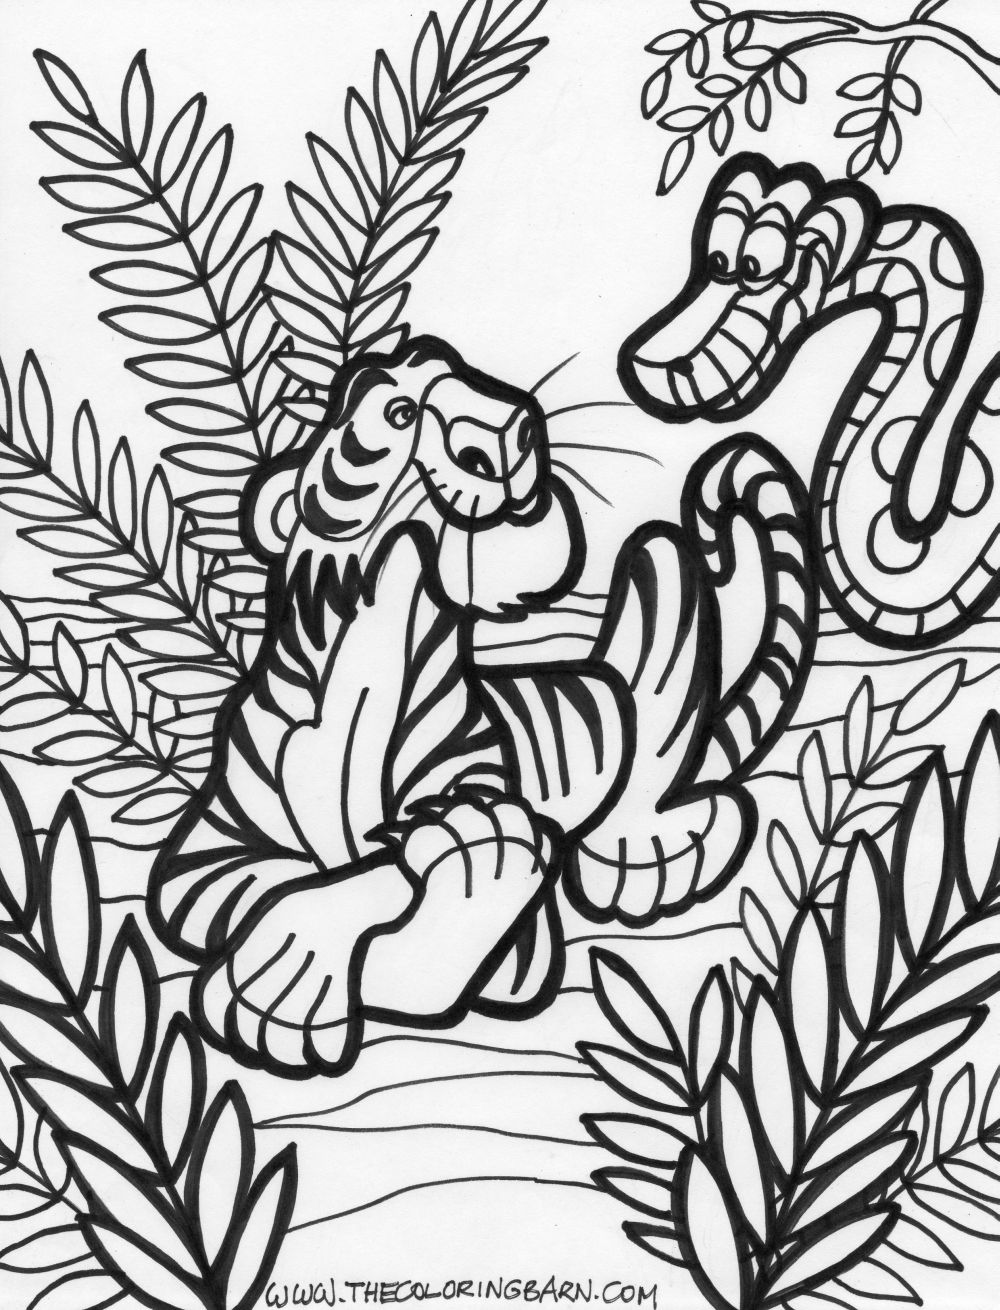 free printable jungle coloring pages jungle coloring pages best coloring pages for kids jungle free coloring printable pages